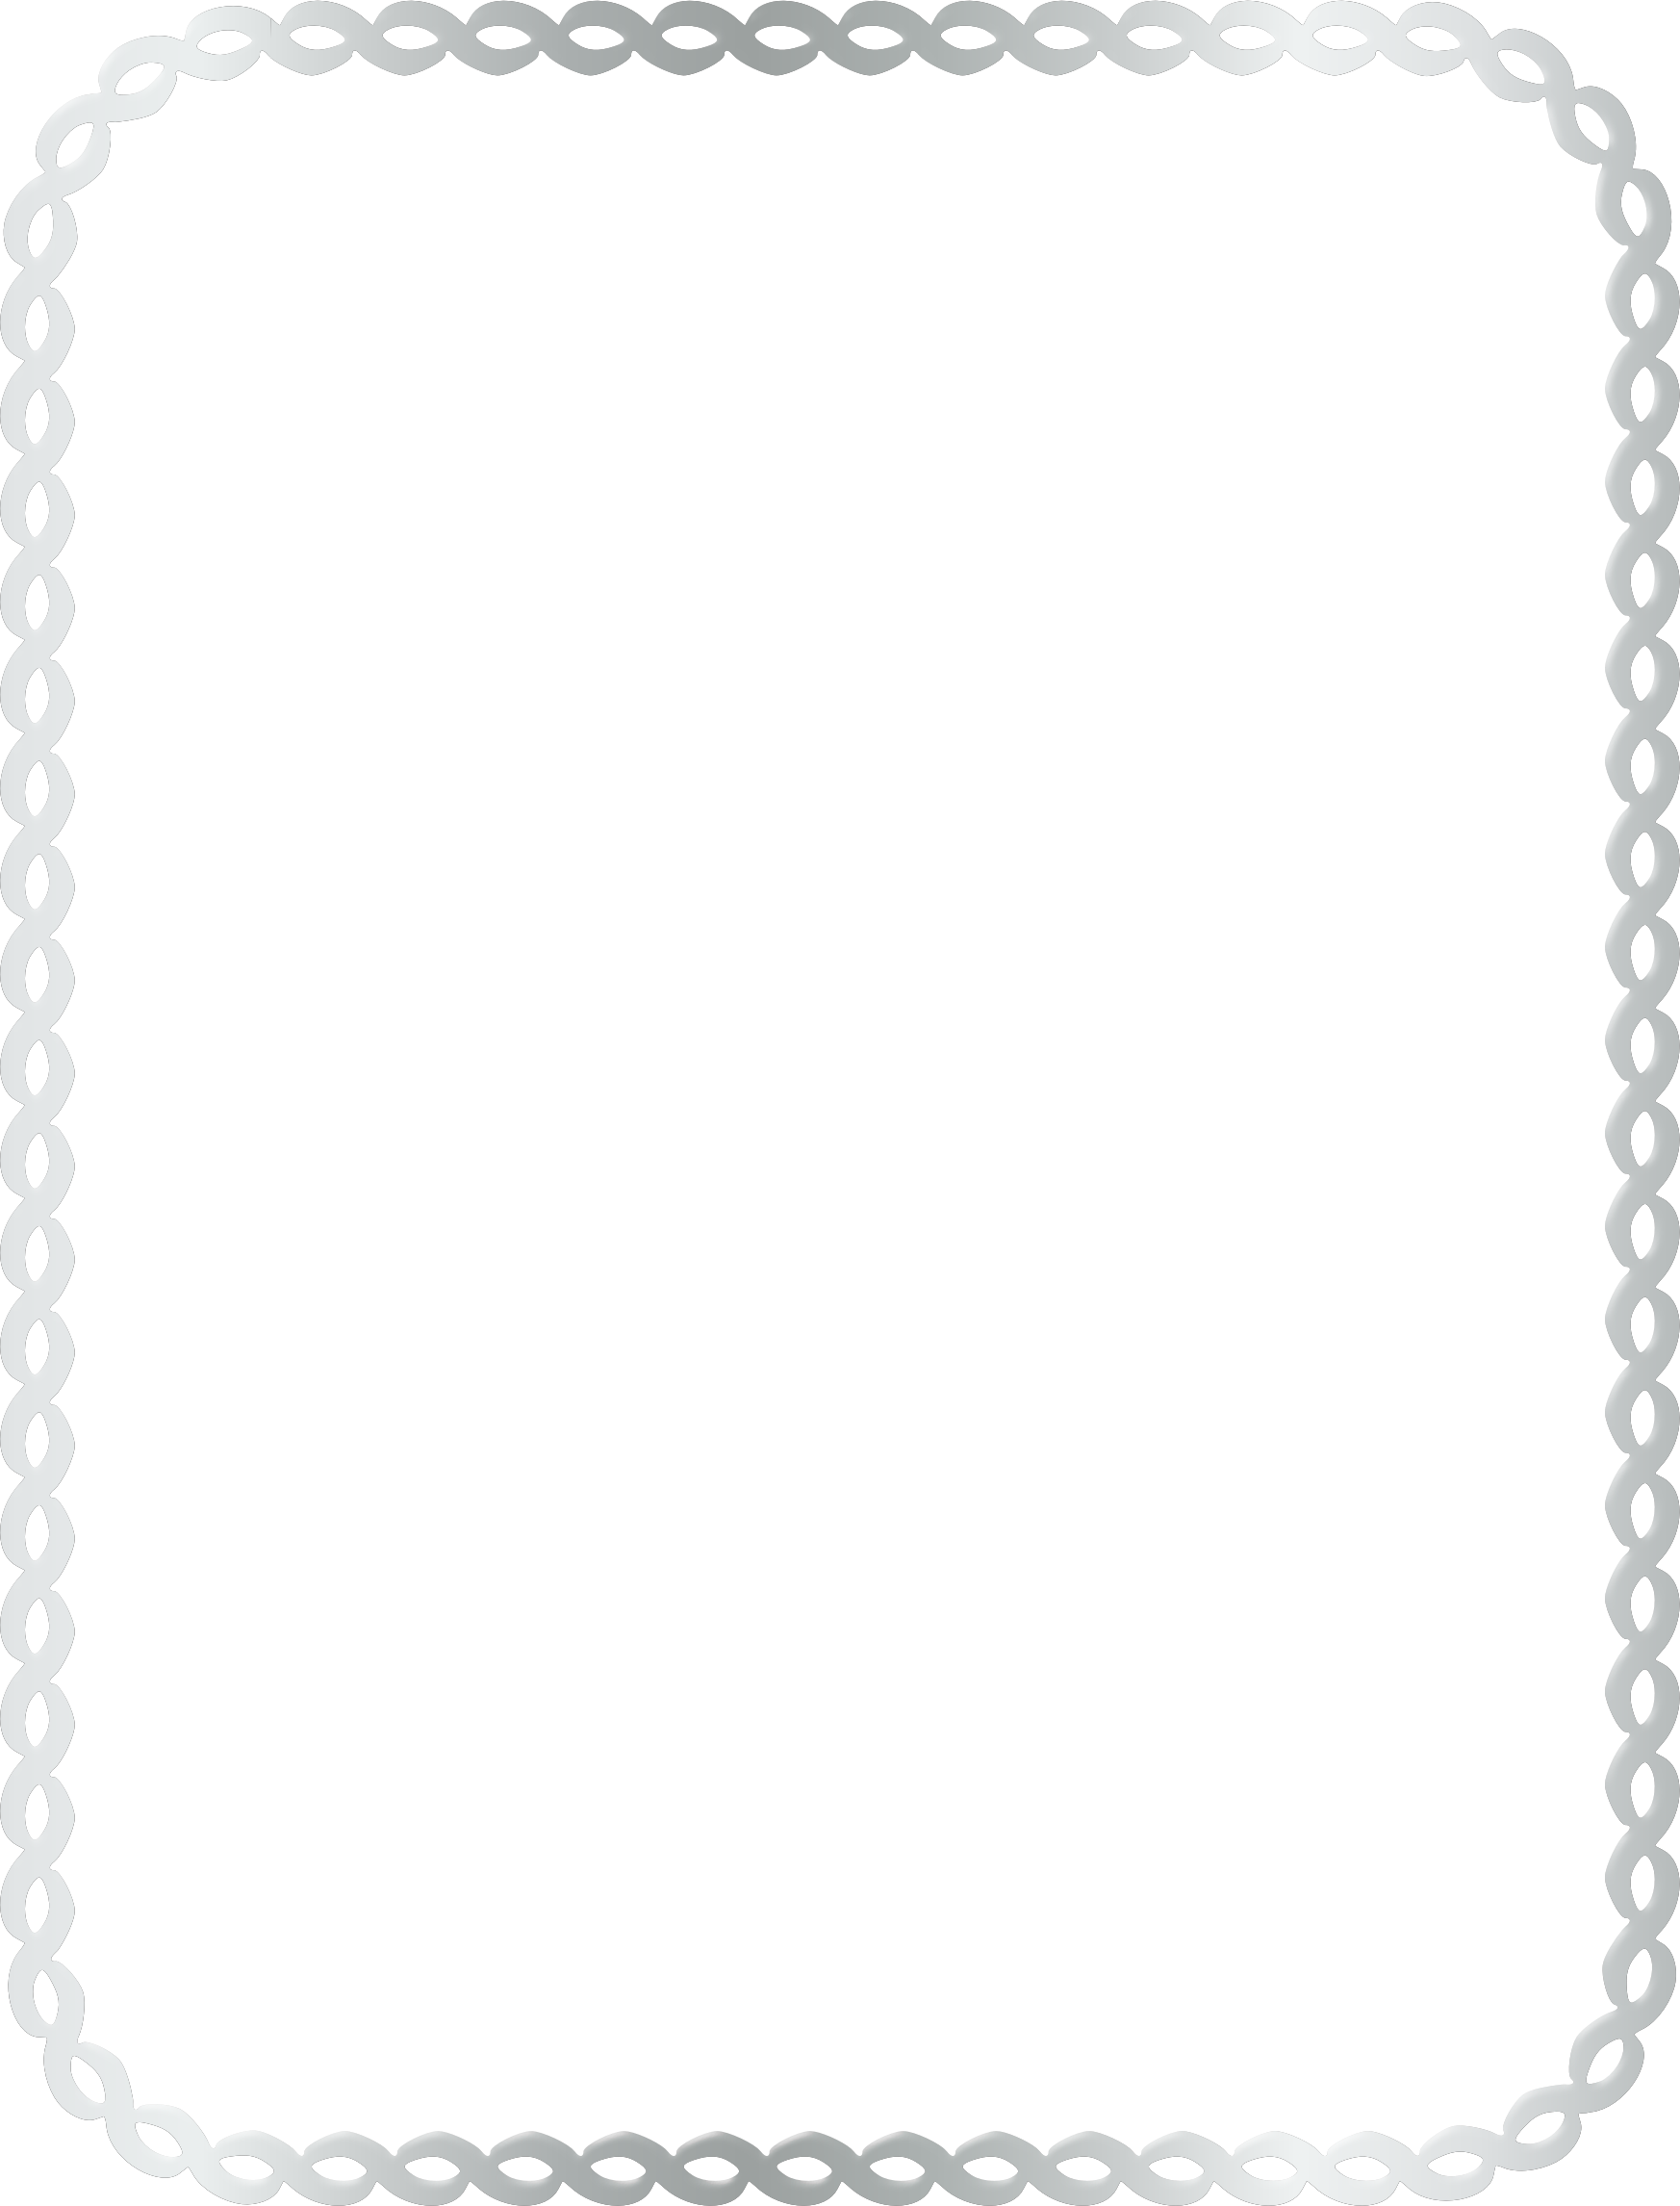 Chain clipart border. Big image png